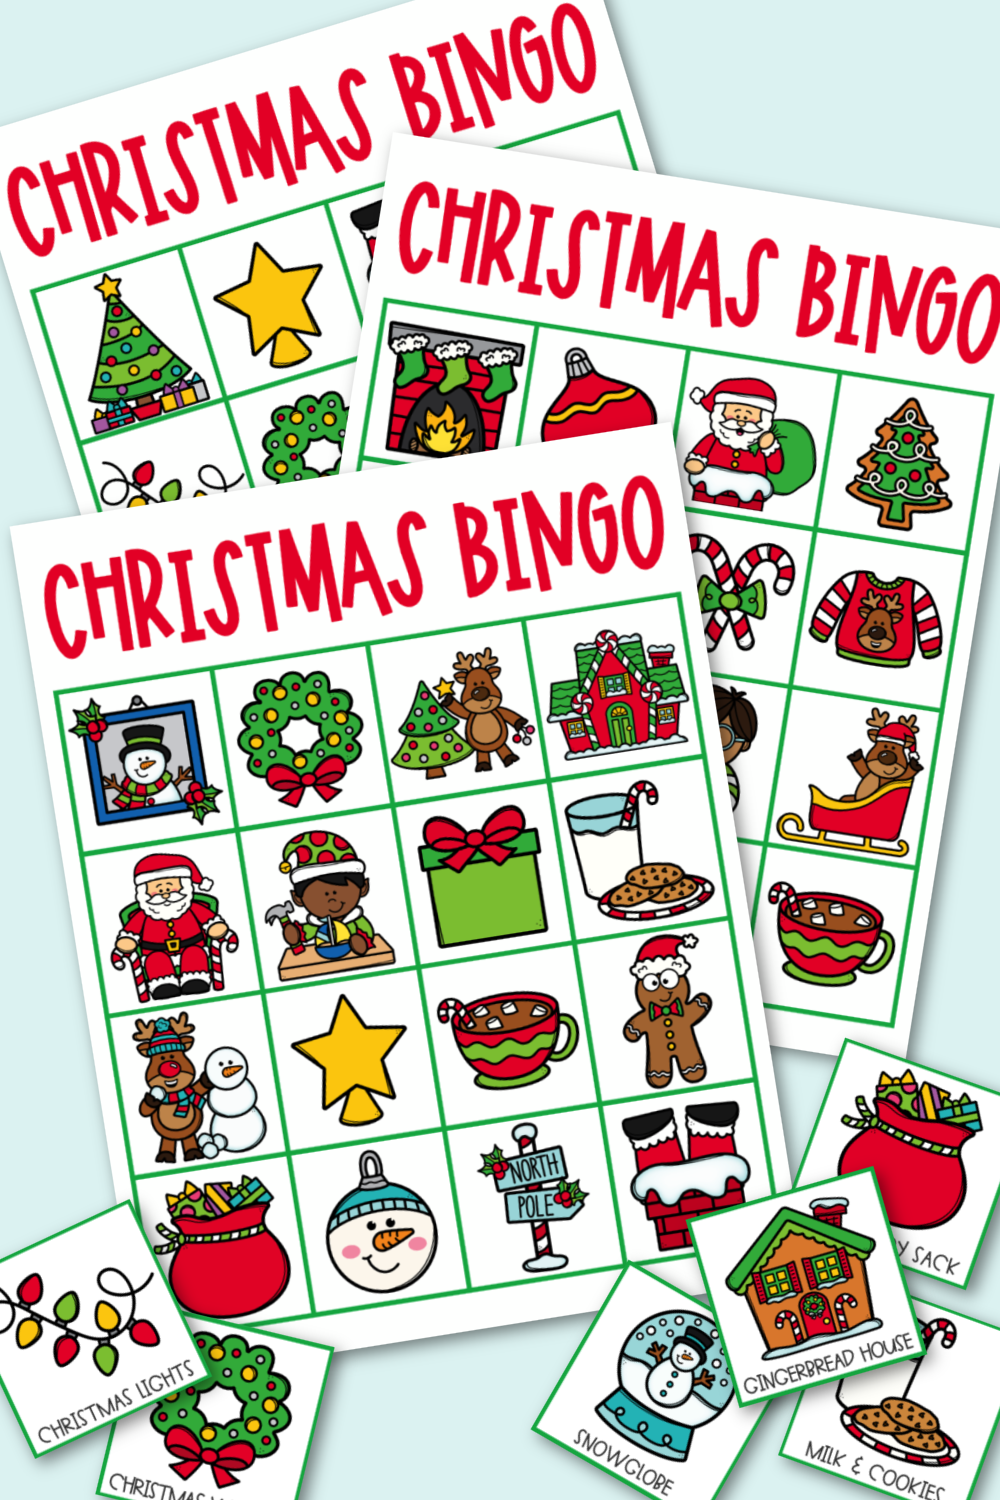 Download and print out this fun Christmas Bingo game and have fun playing a festive holiday game.